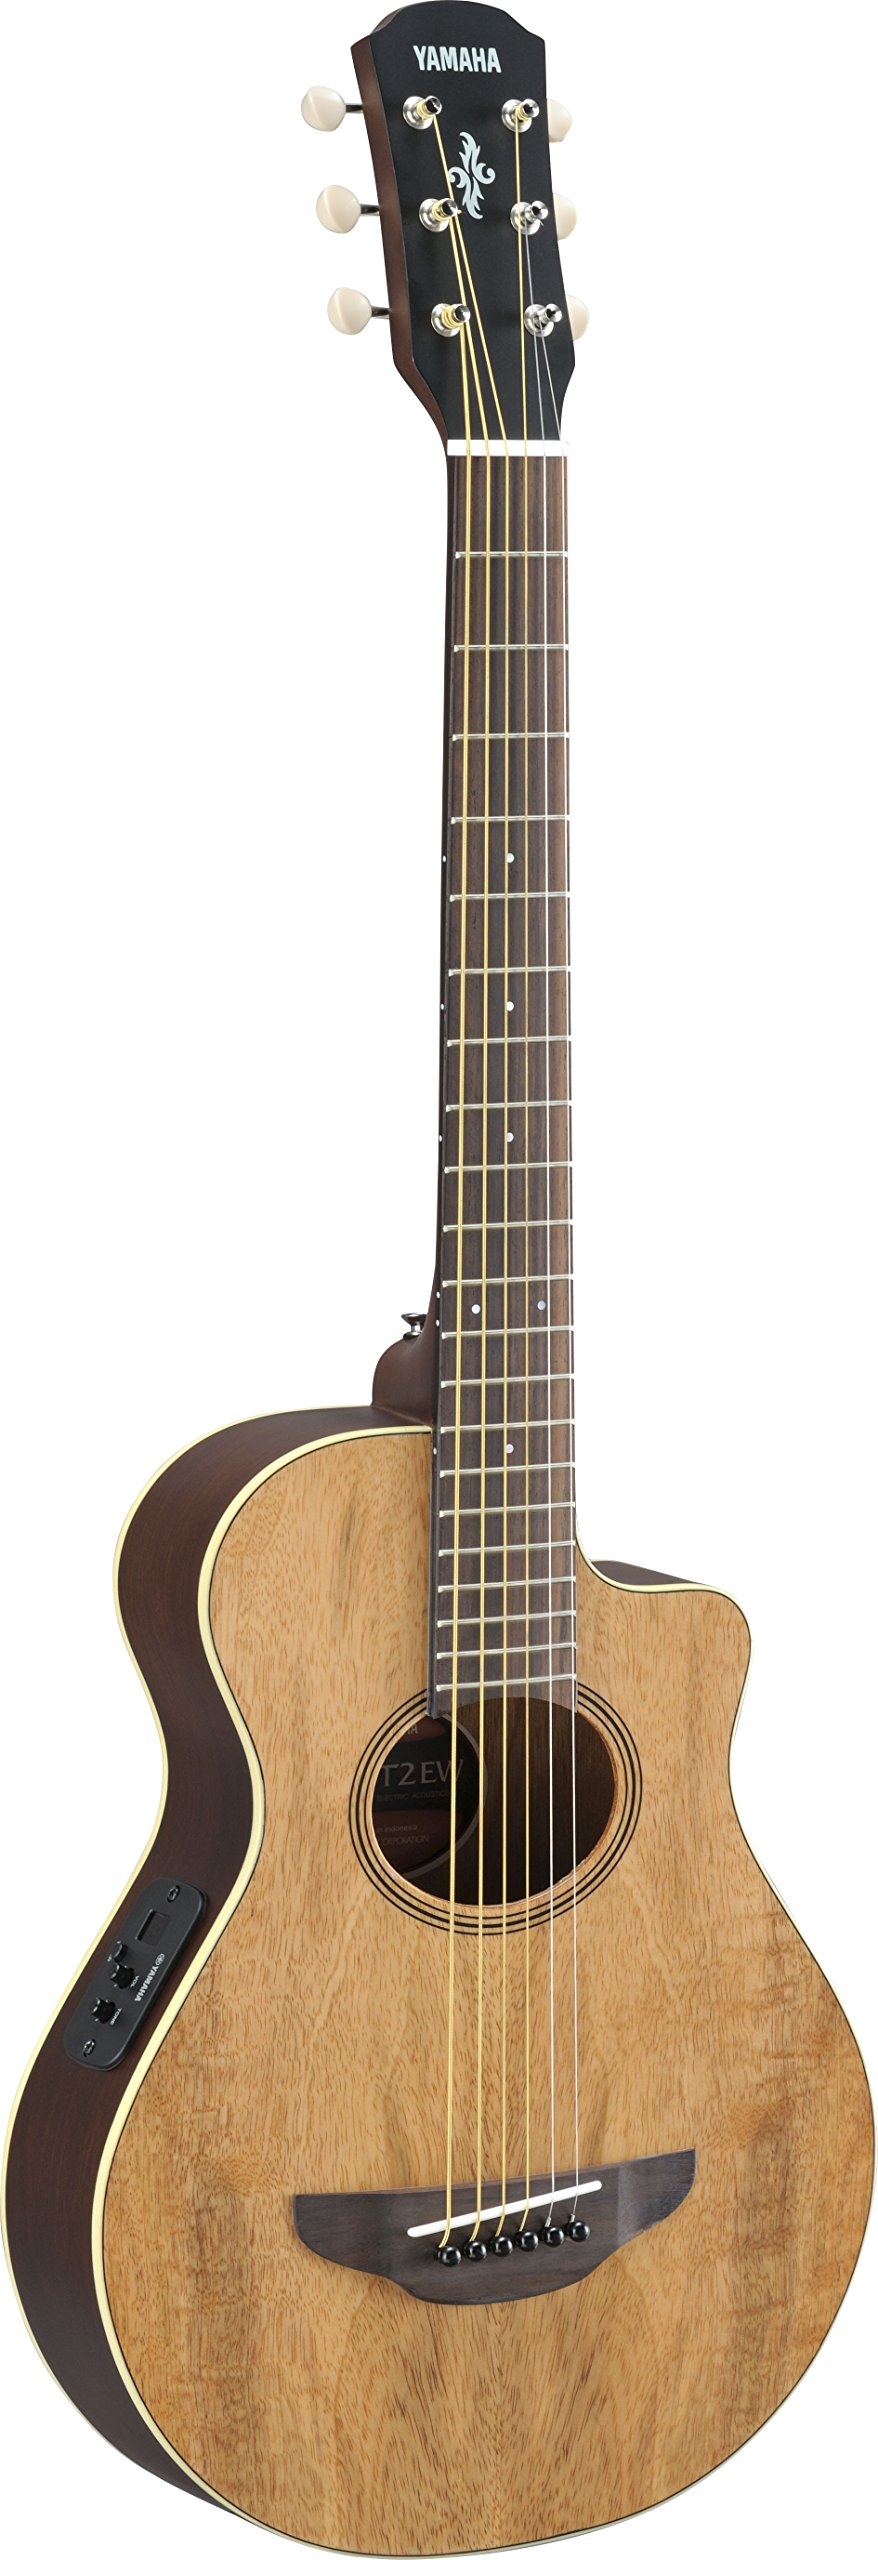 Yamaha APXT2EW 3/4-Size Acoustic-Electric Guitar with Gig Bag, Figured Natural by Yamaha PAC